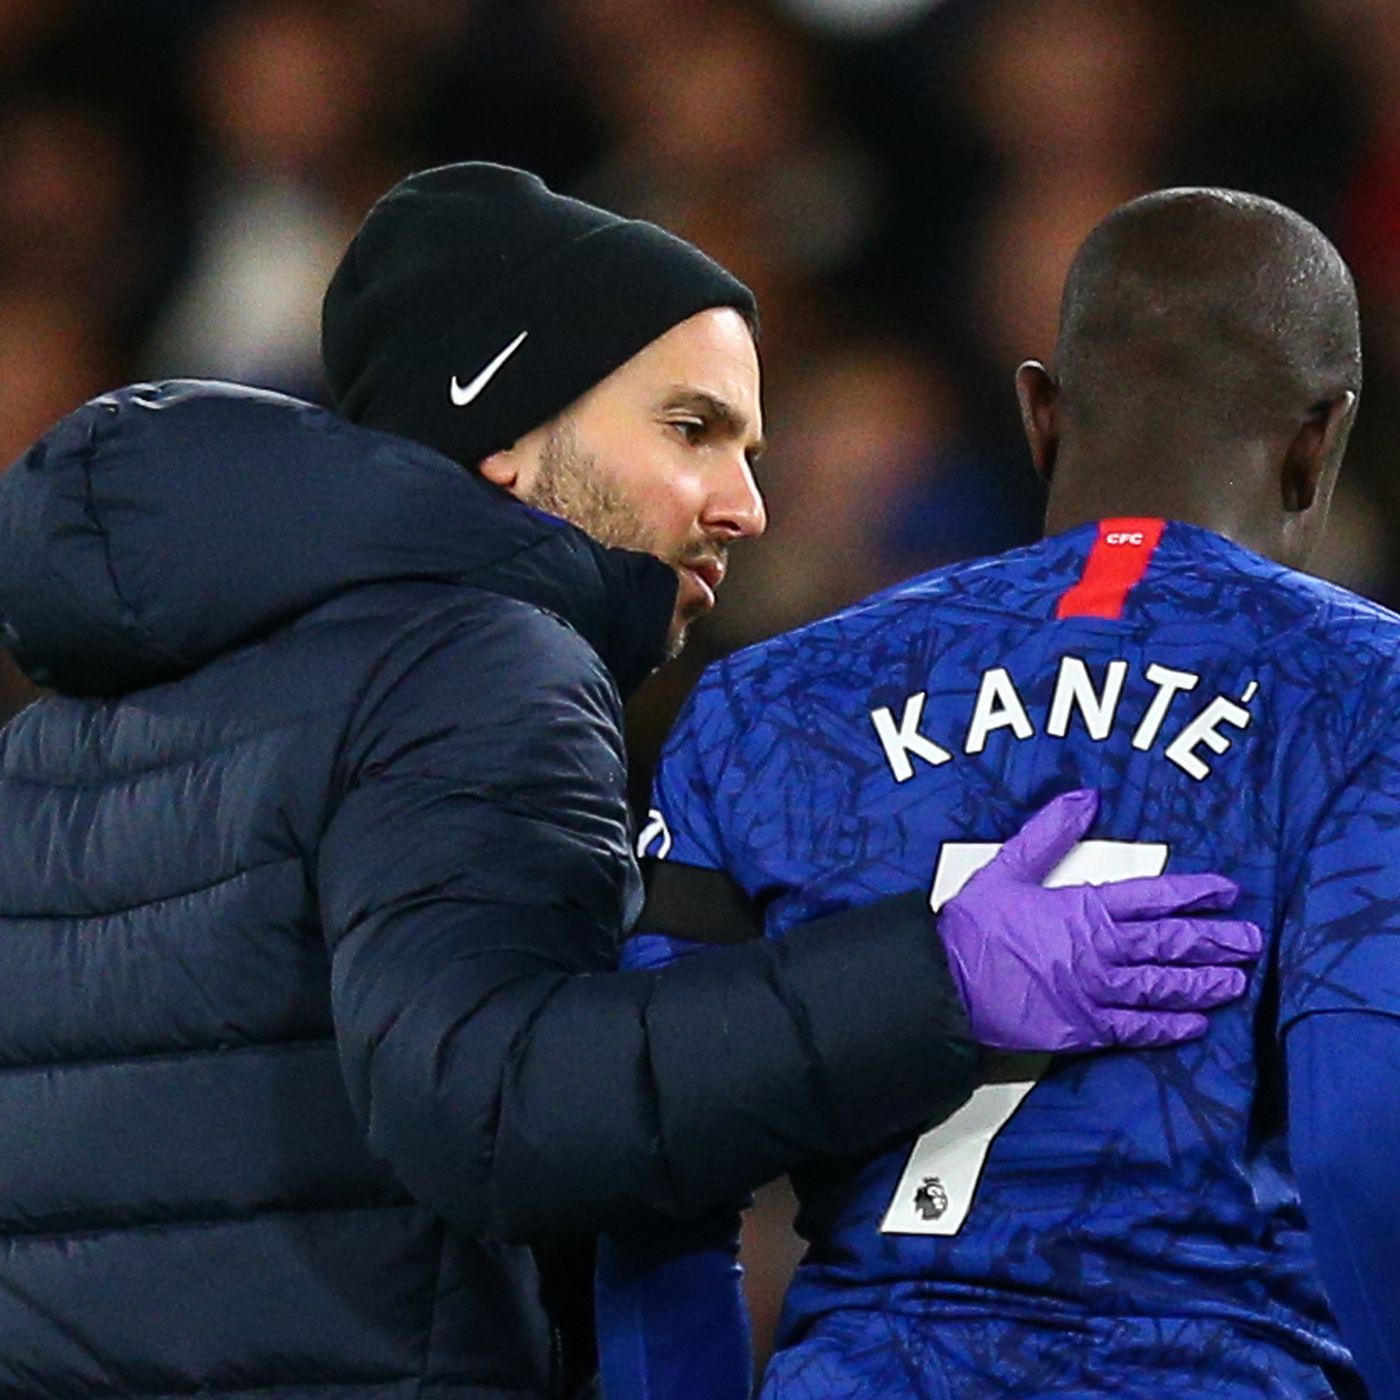 Kanté 'prepared to miss' rest of Chelsea season over COVID-19. photo credit: cfc.com